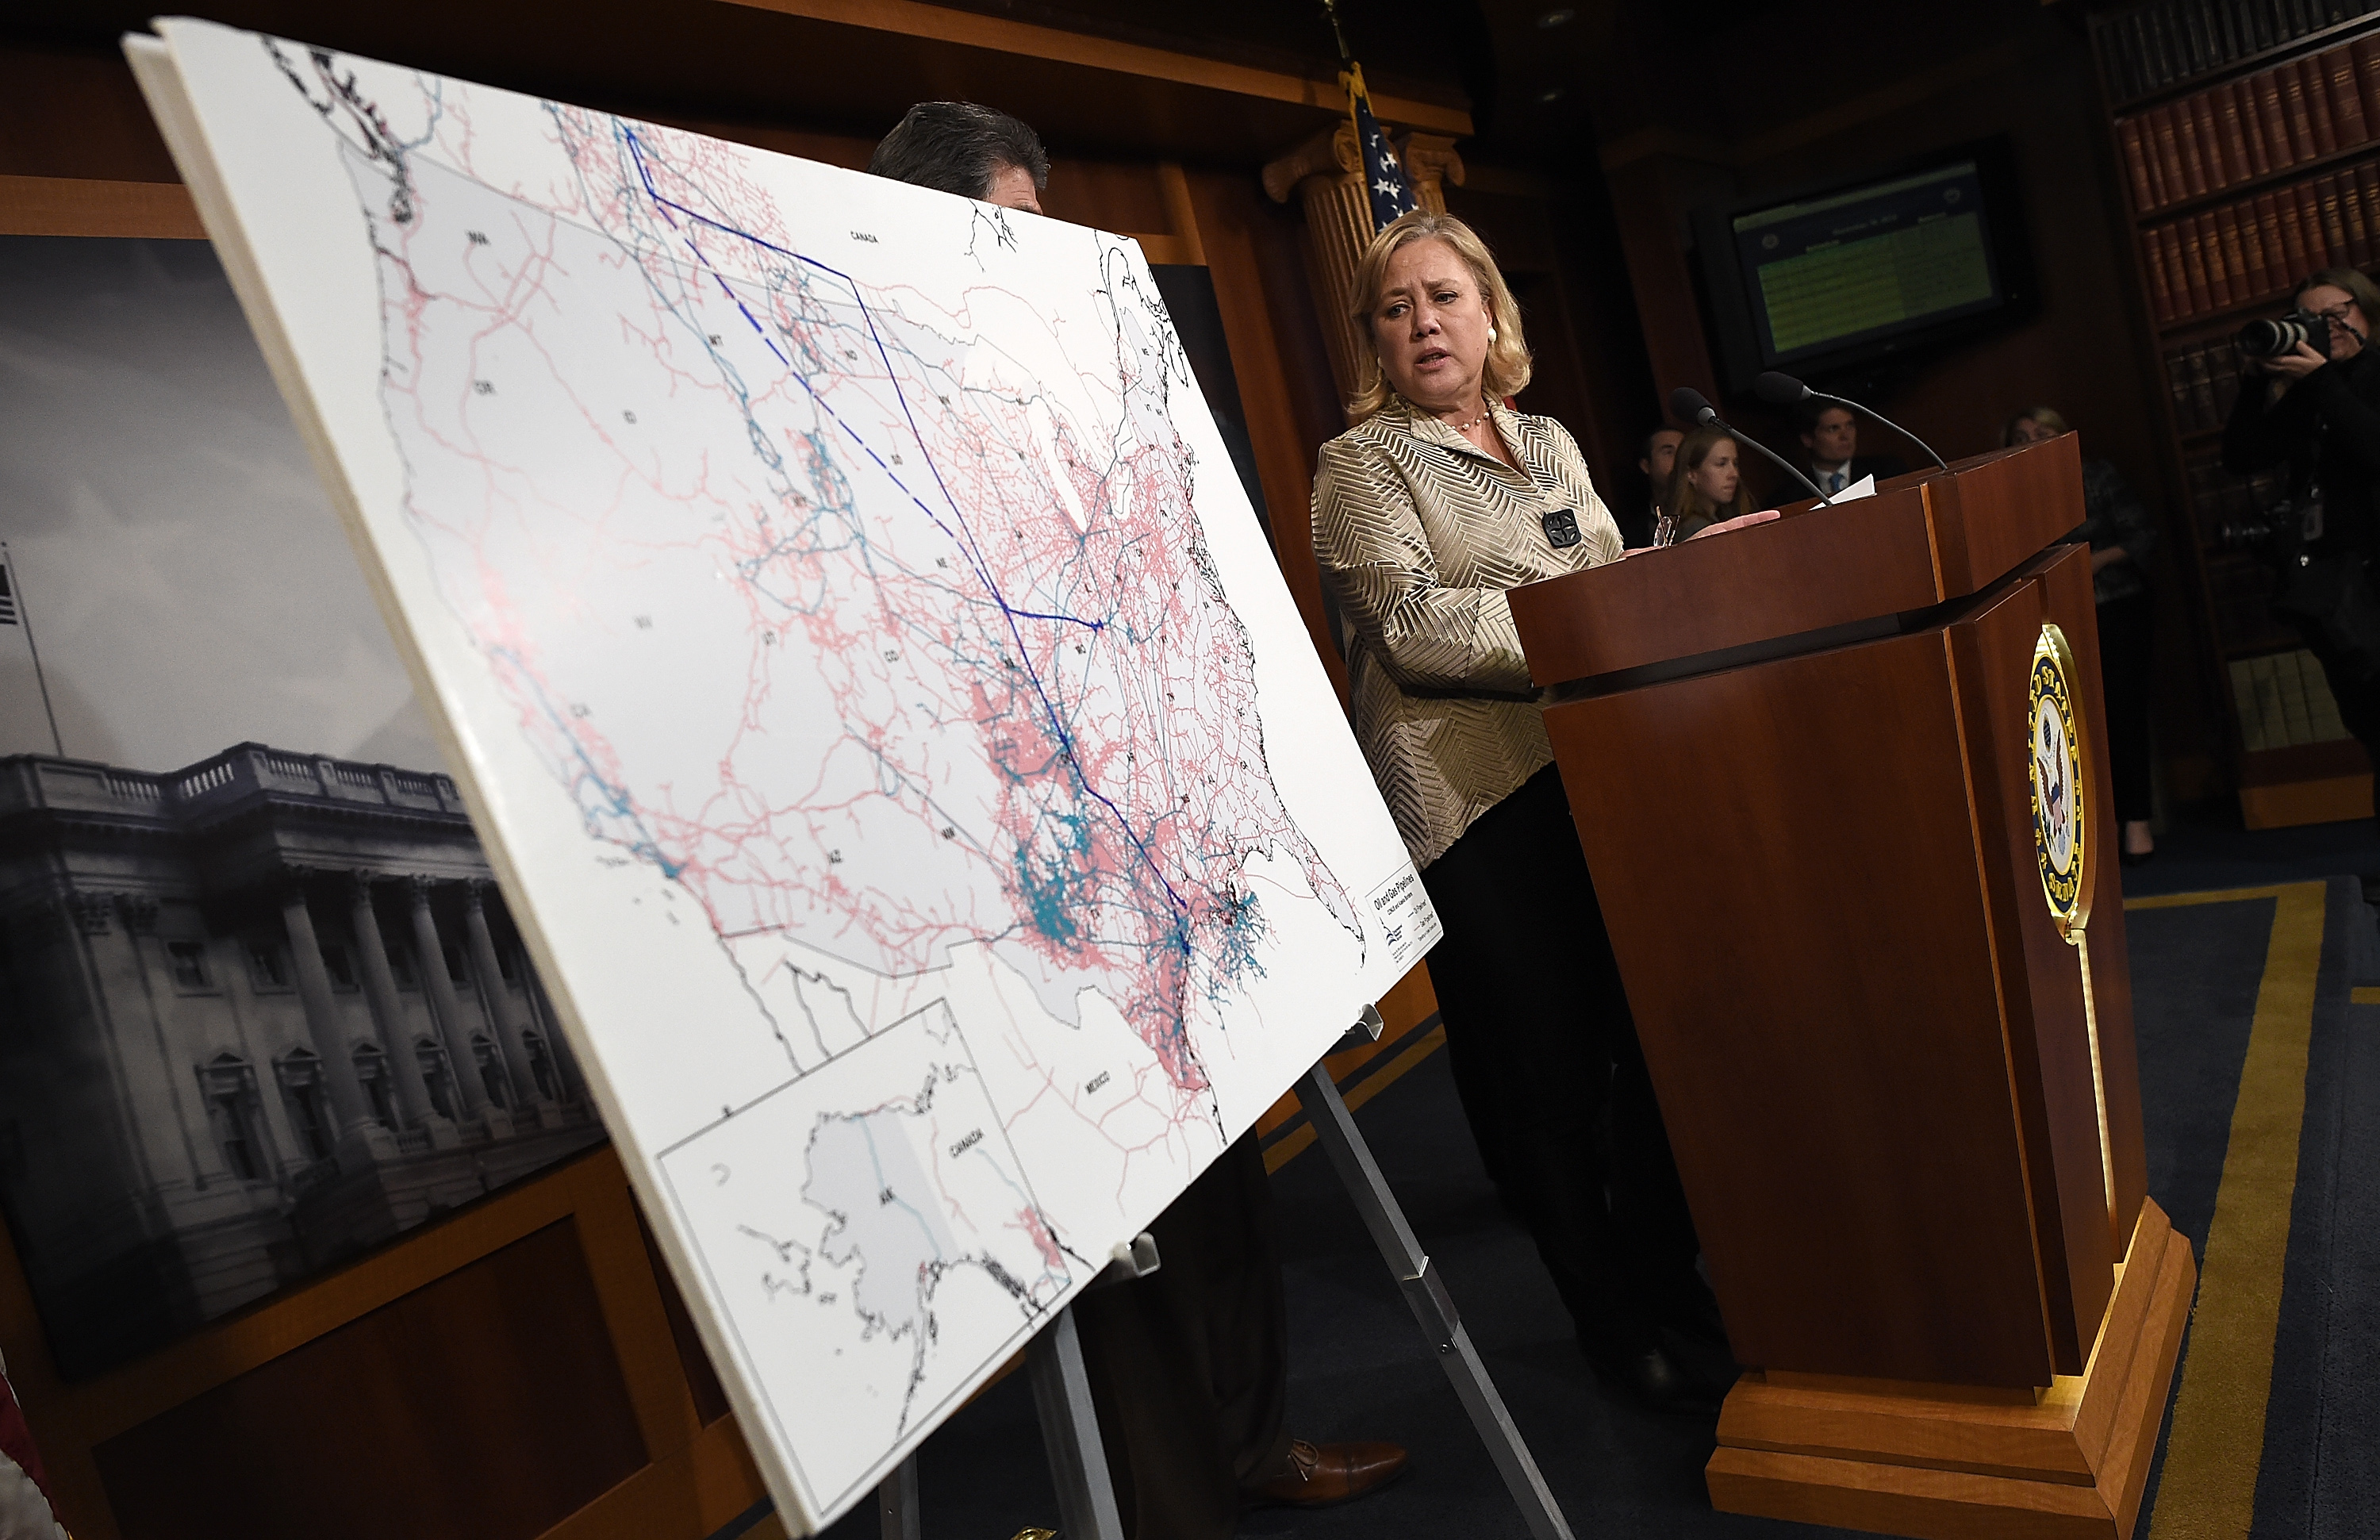 U.S. Sen. Mary Landrieu speaks after the Senate voted on the Keystone XL Pipeline Bill at the U.S. Capitol on Nov. 18, 2014 in Washington.